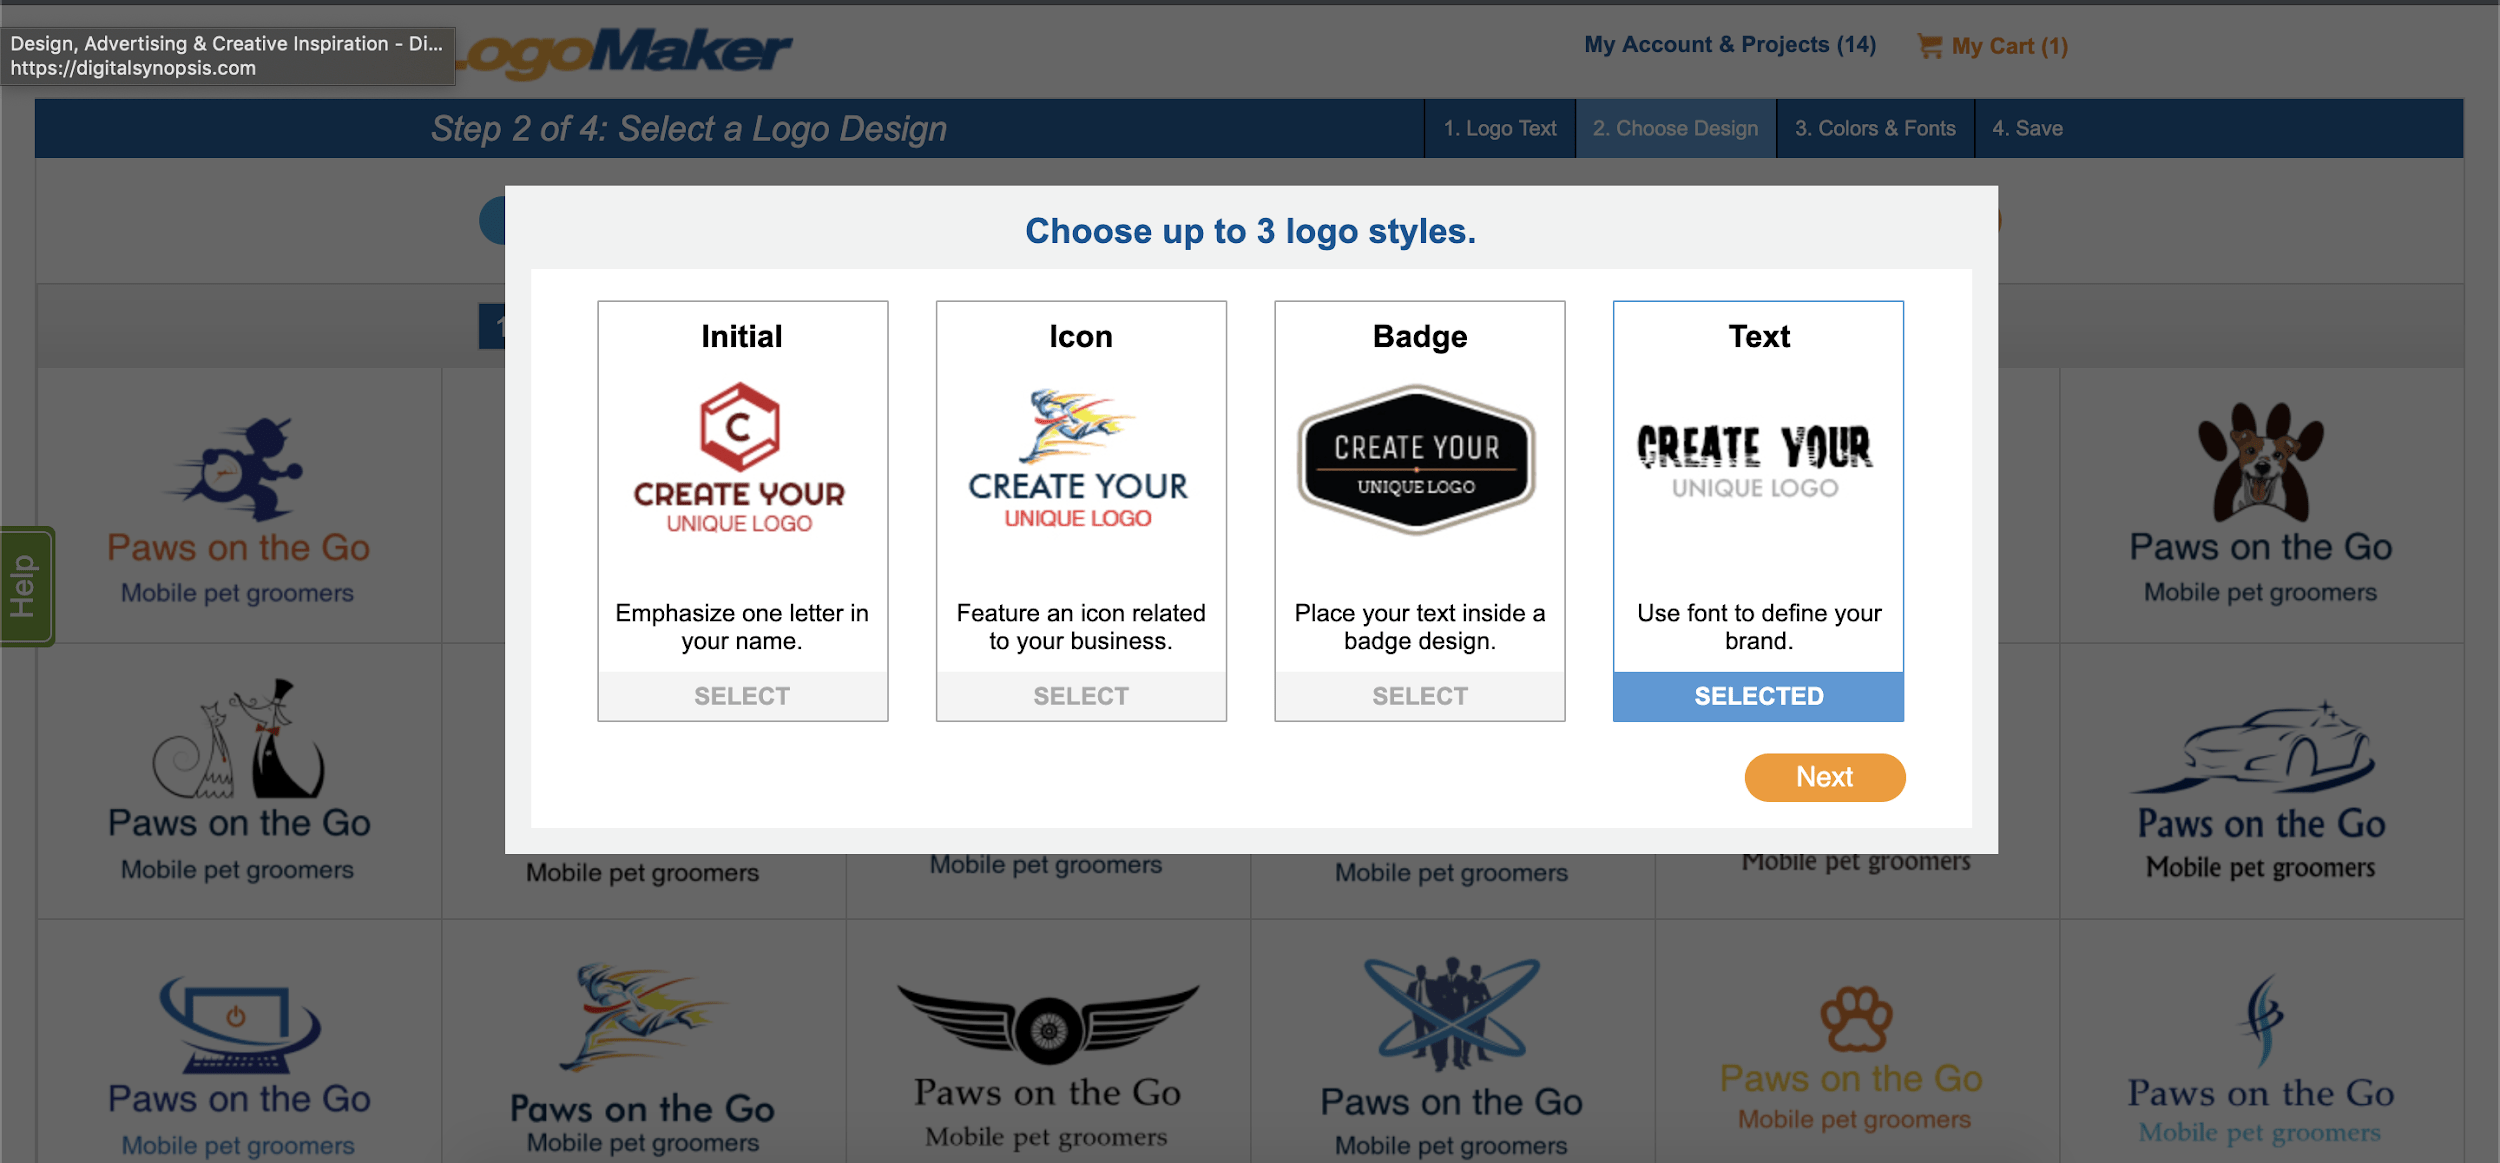 LogoMaker screenshot - Choose logo styles